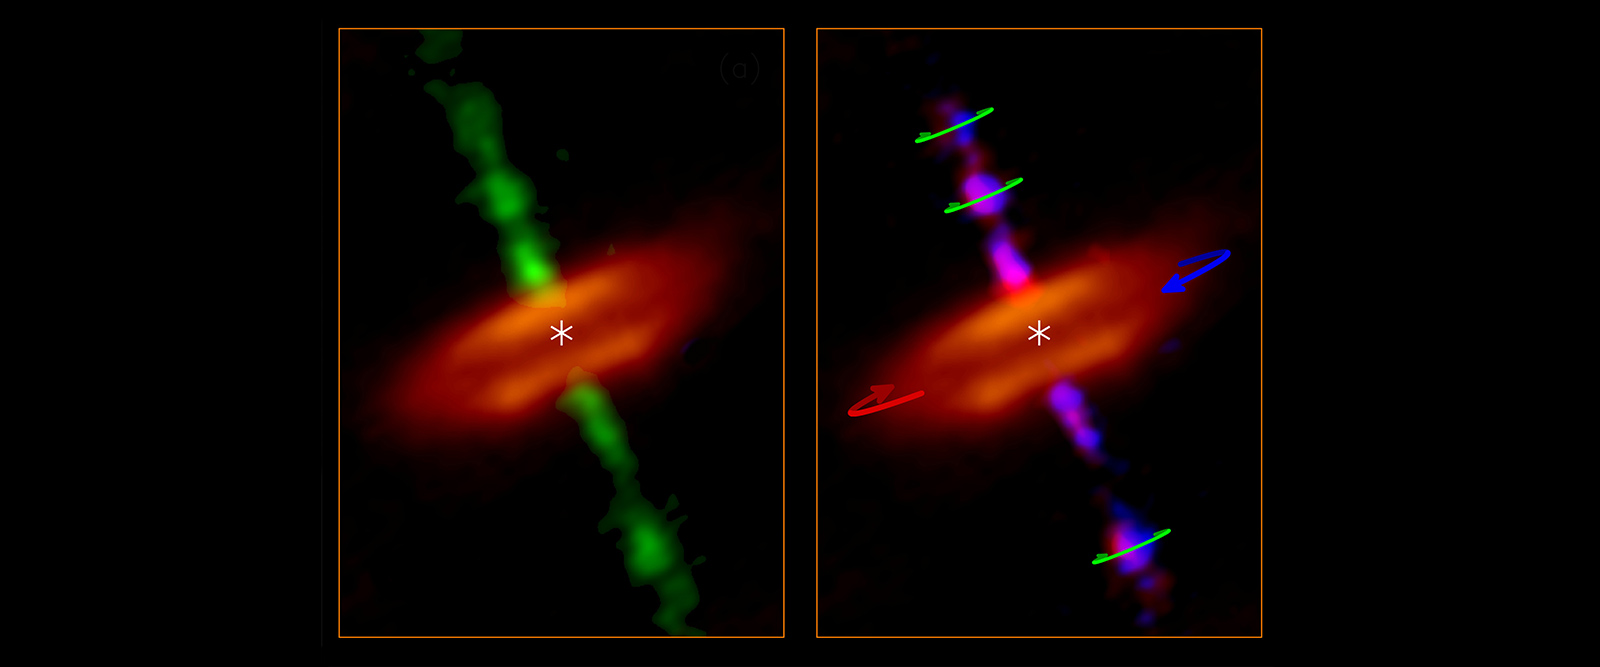 Rotating jets solve 'merry-go-round' problem of star formation